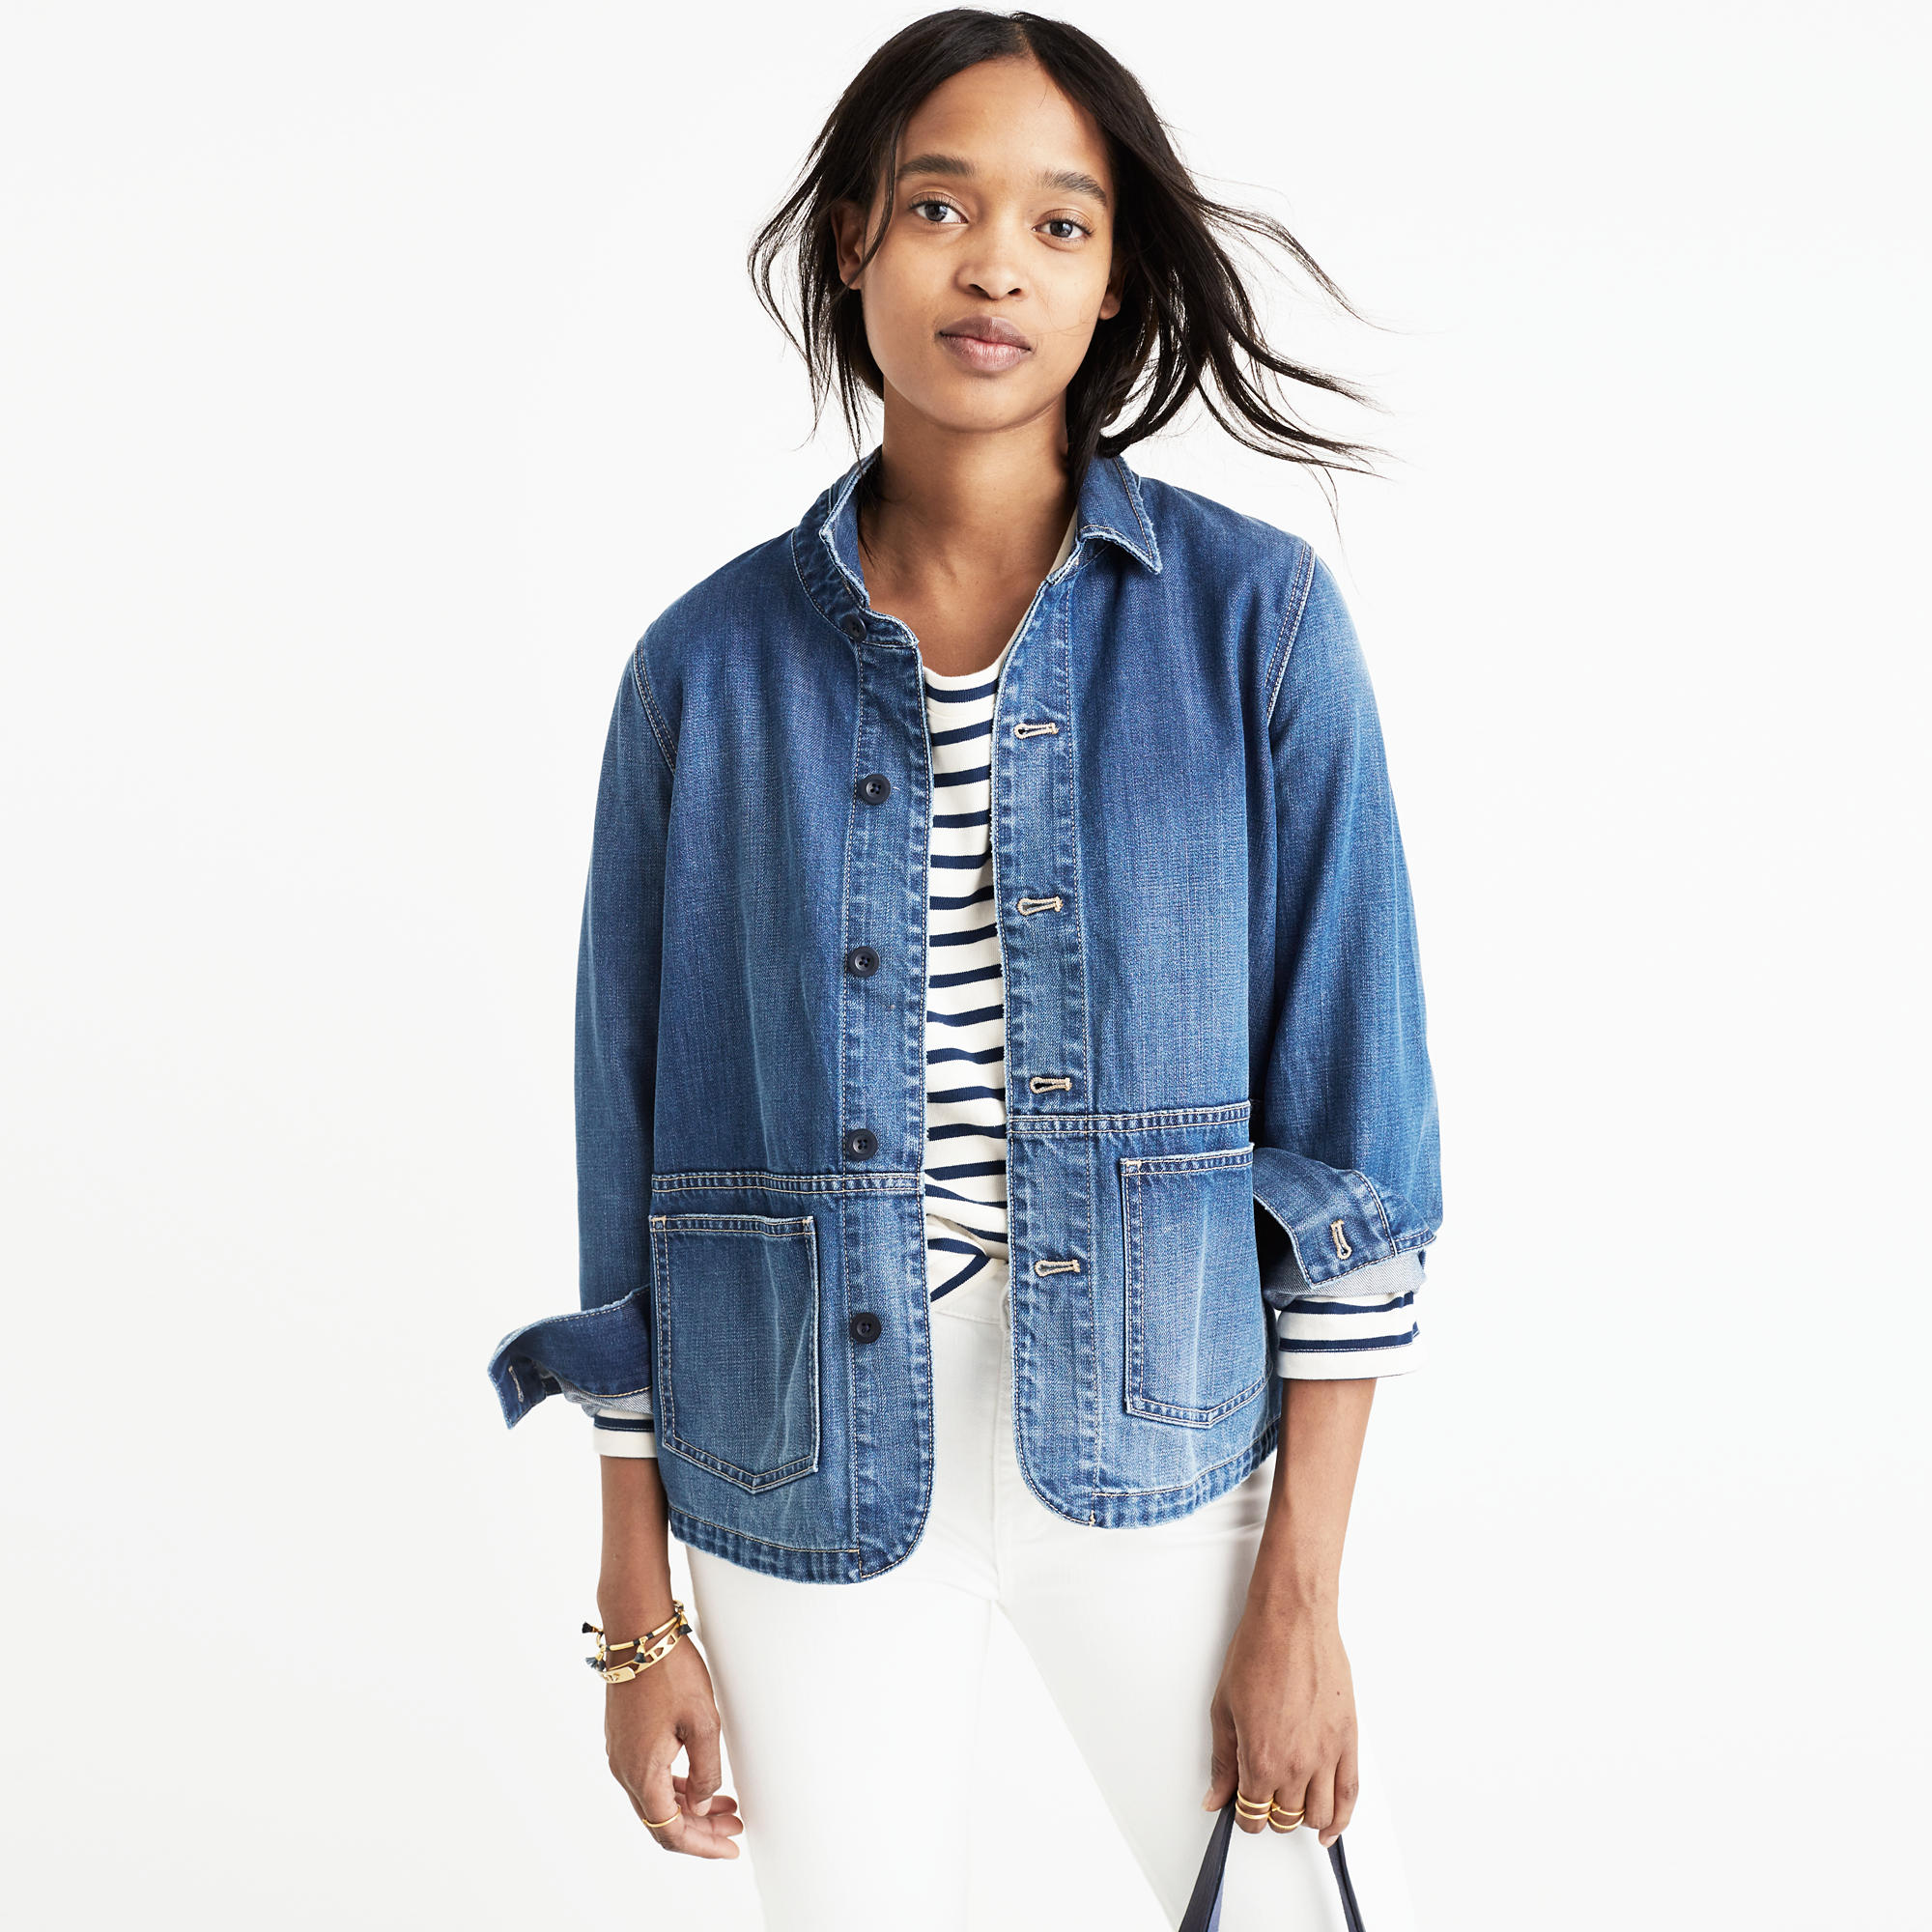 Denver Jean Jacket : more denim dressing | Madewell